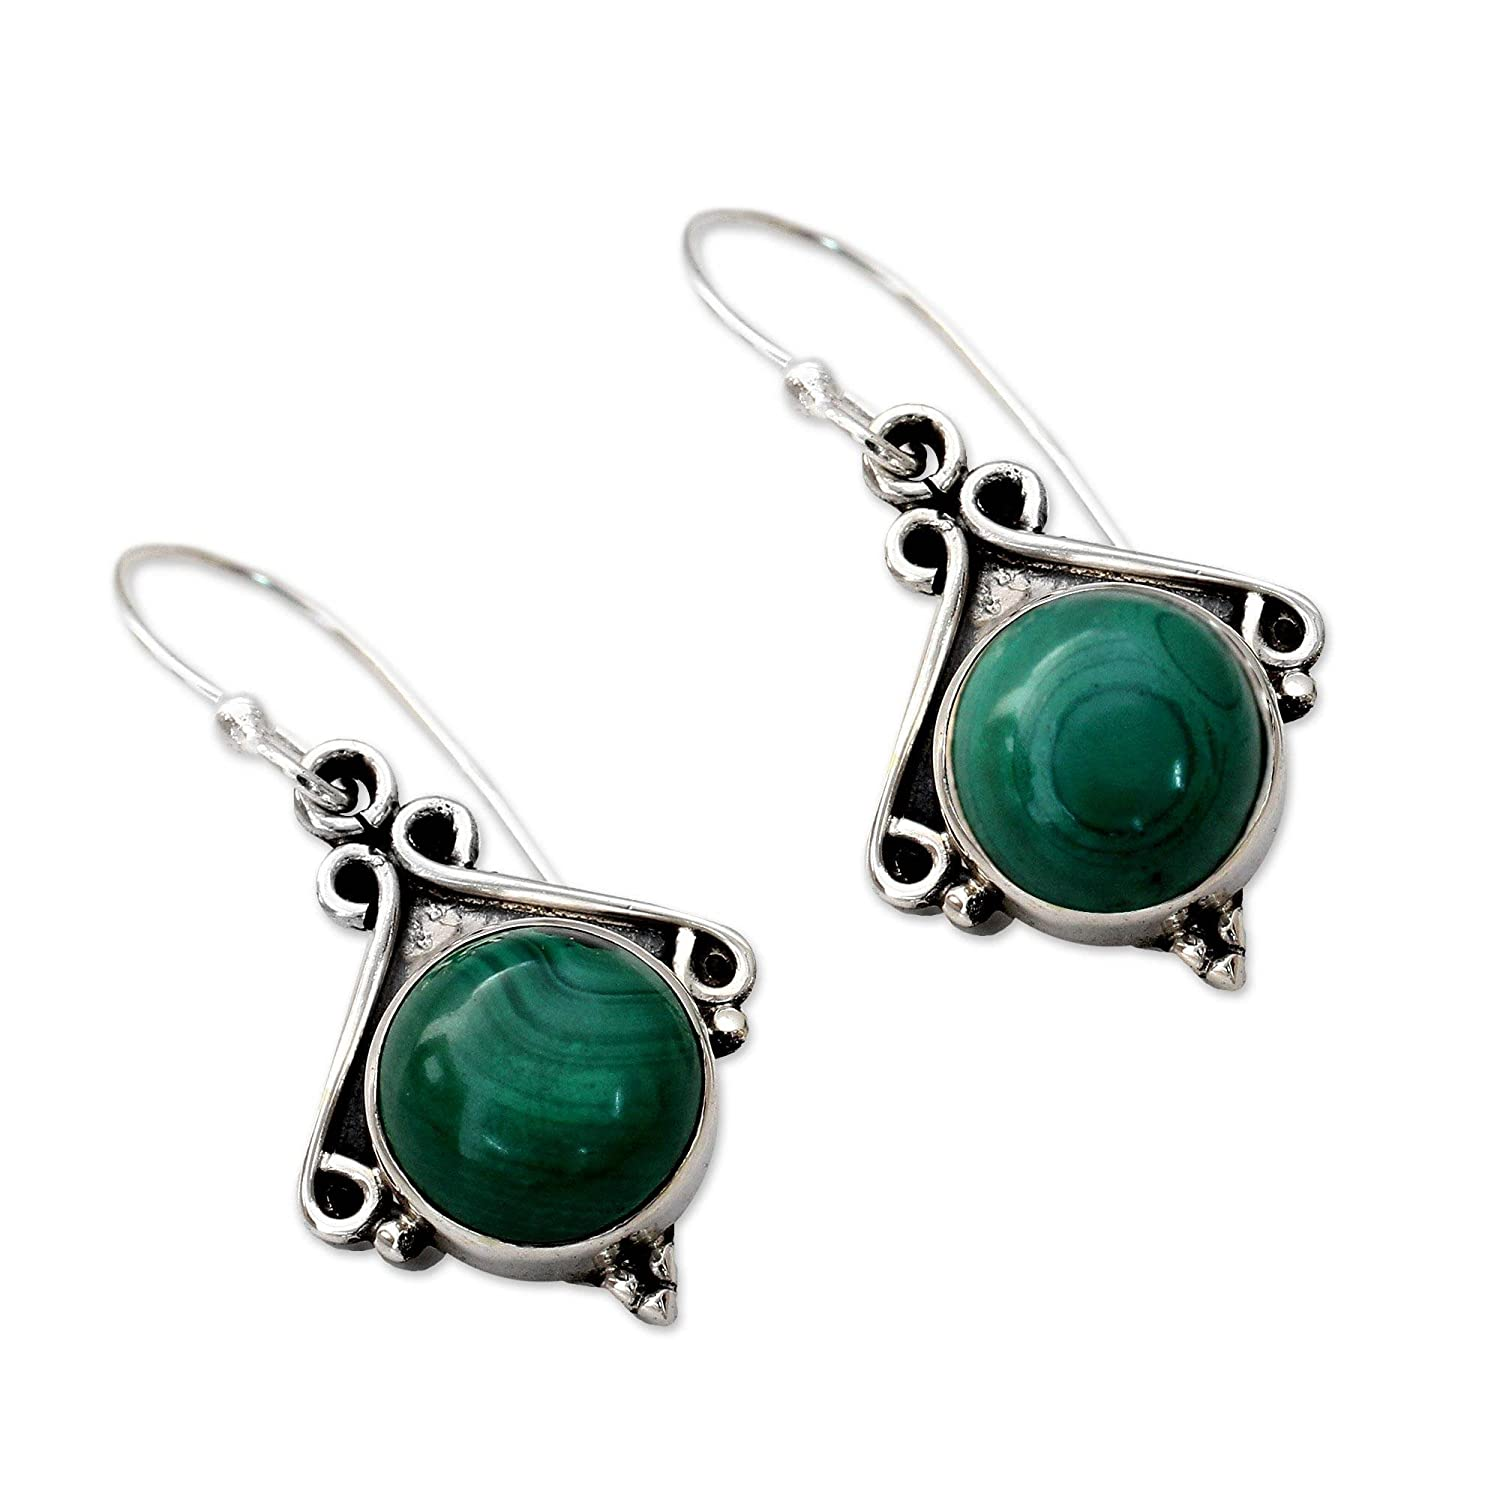 NOVICA .925 Sterling Silver Dangle Earrings with Malachite, Forest Charm